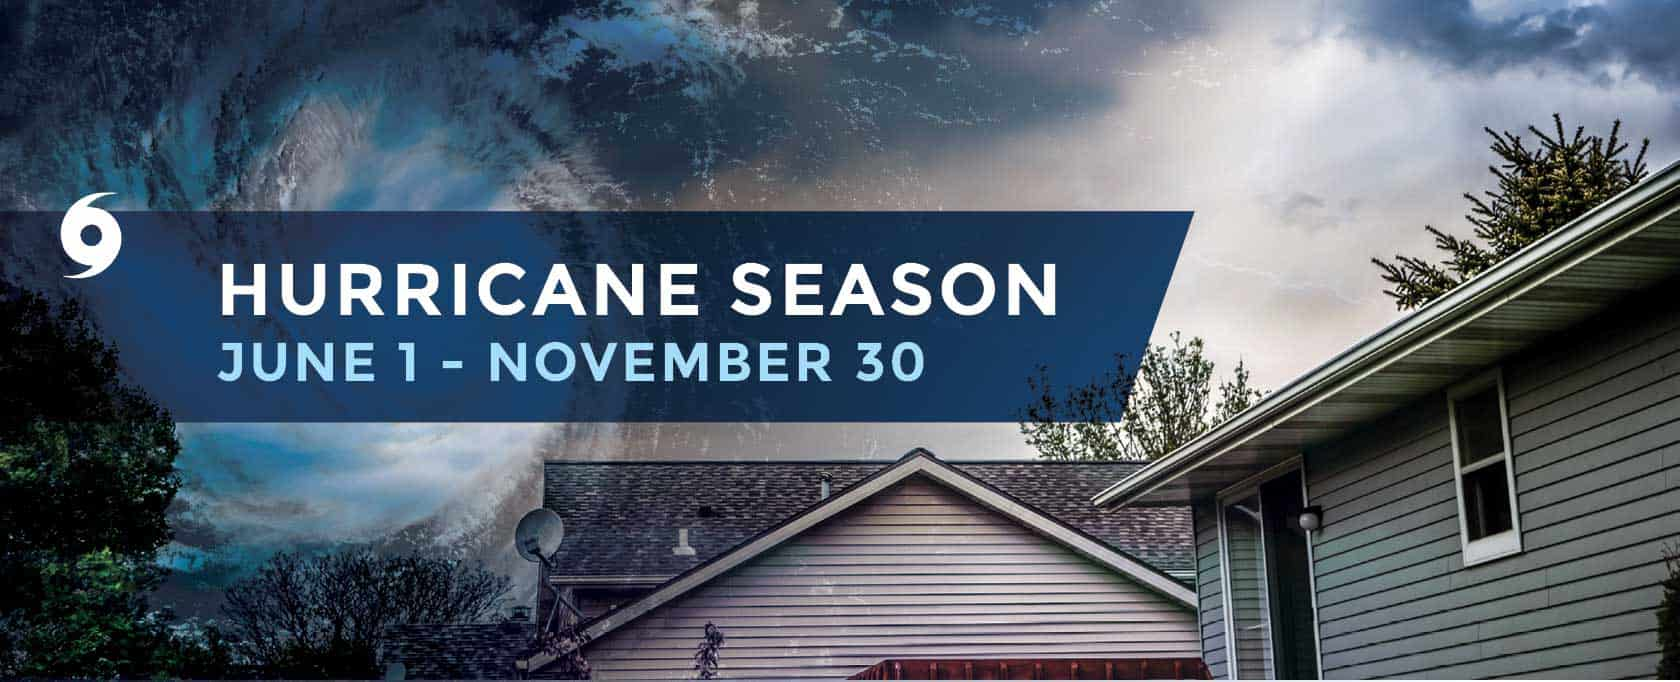 Hurricane Season | June 1 - November 30